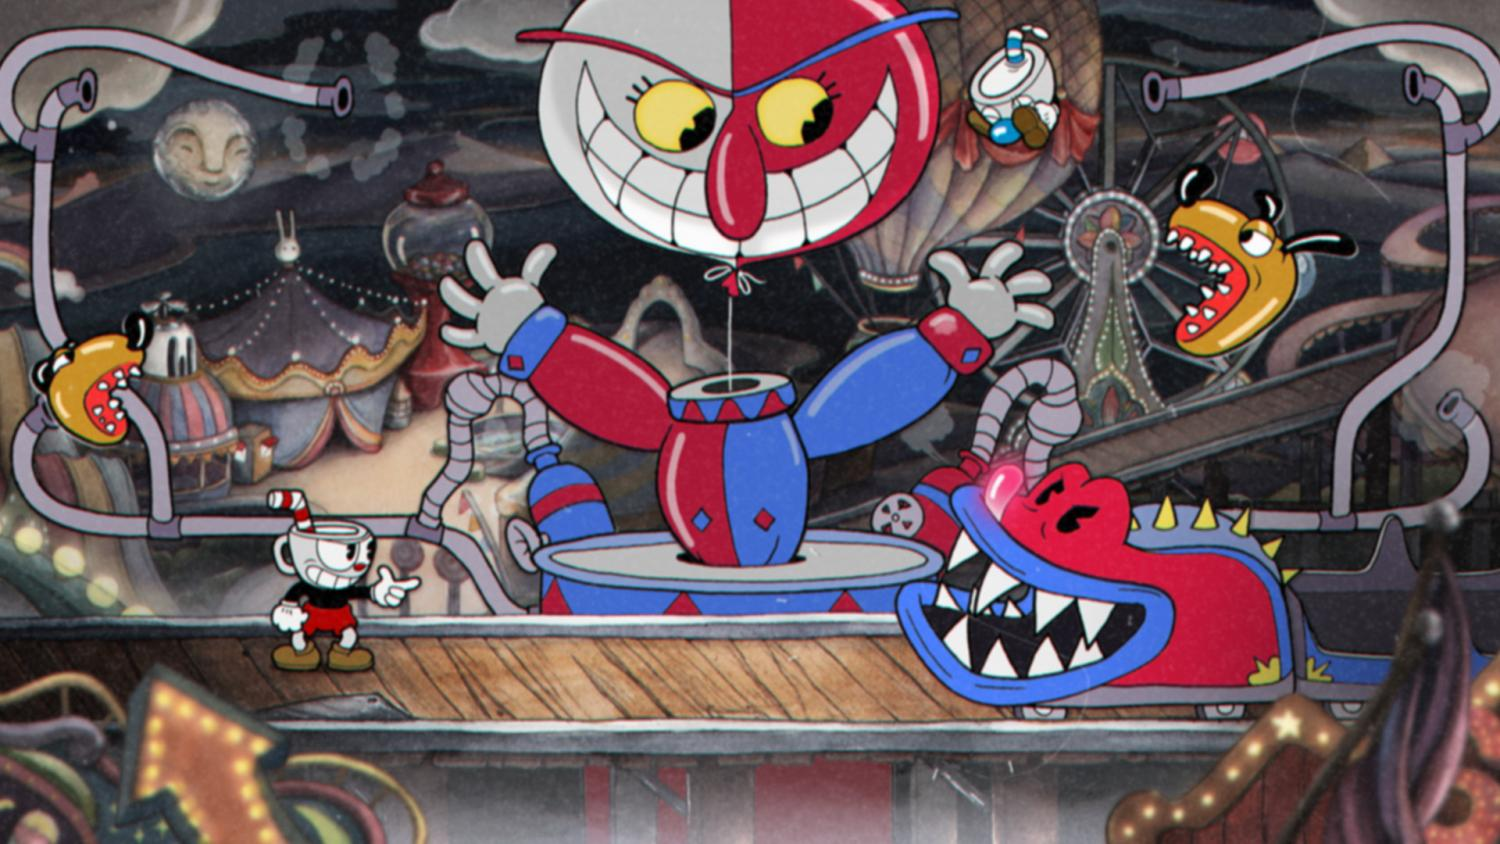 Cuphead fights a monstrous roller-coaster that has come to life.   Image from steam.com